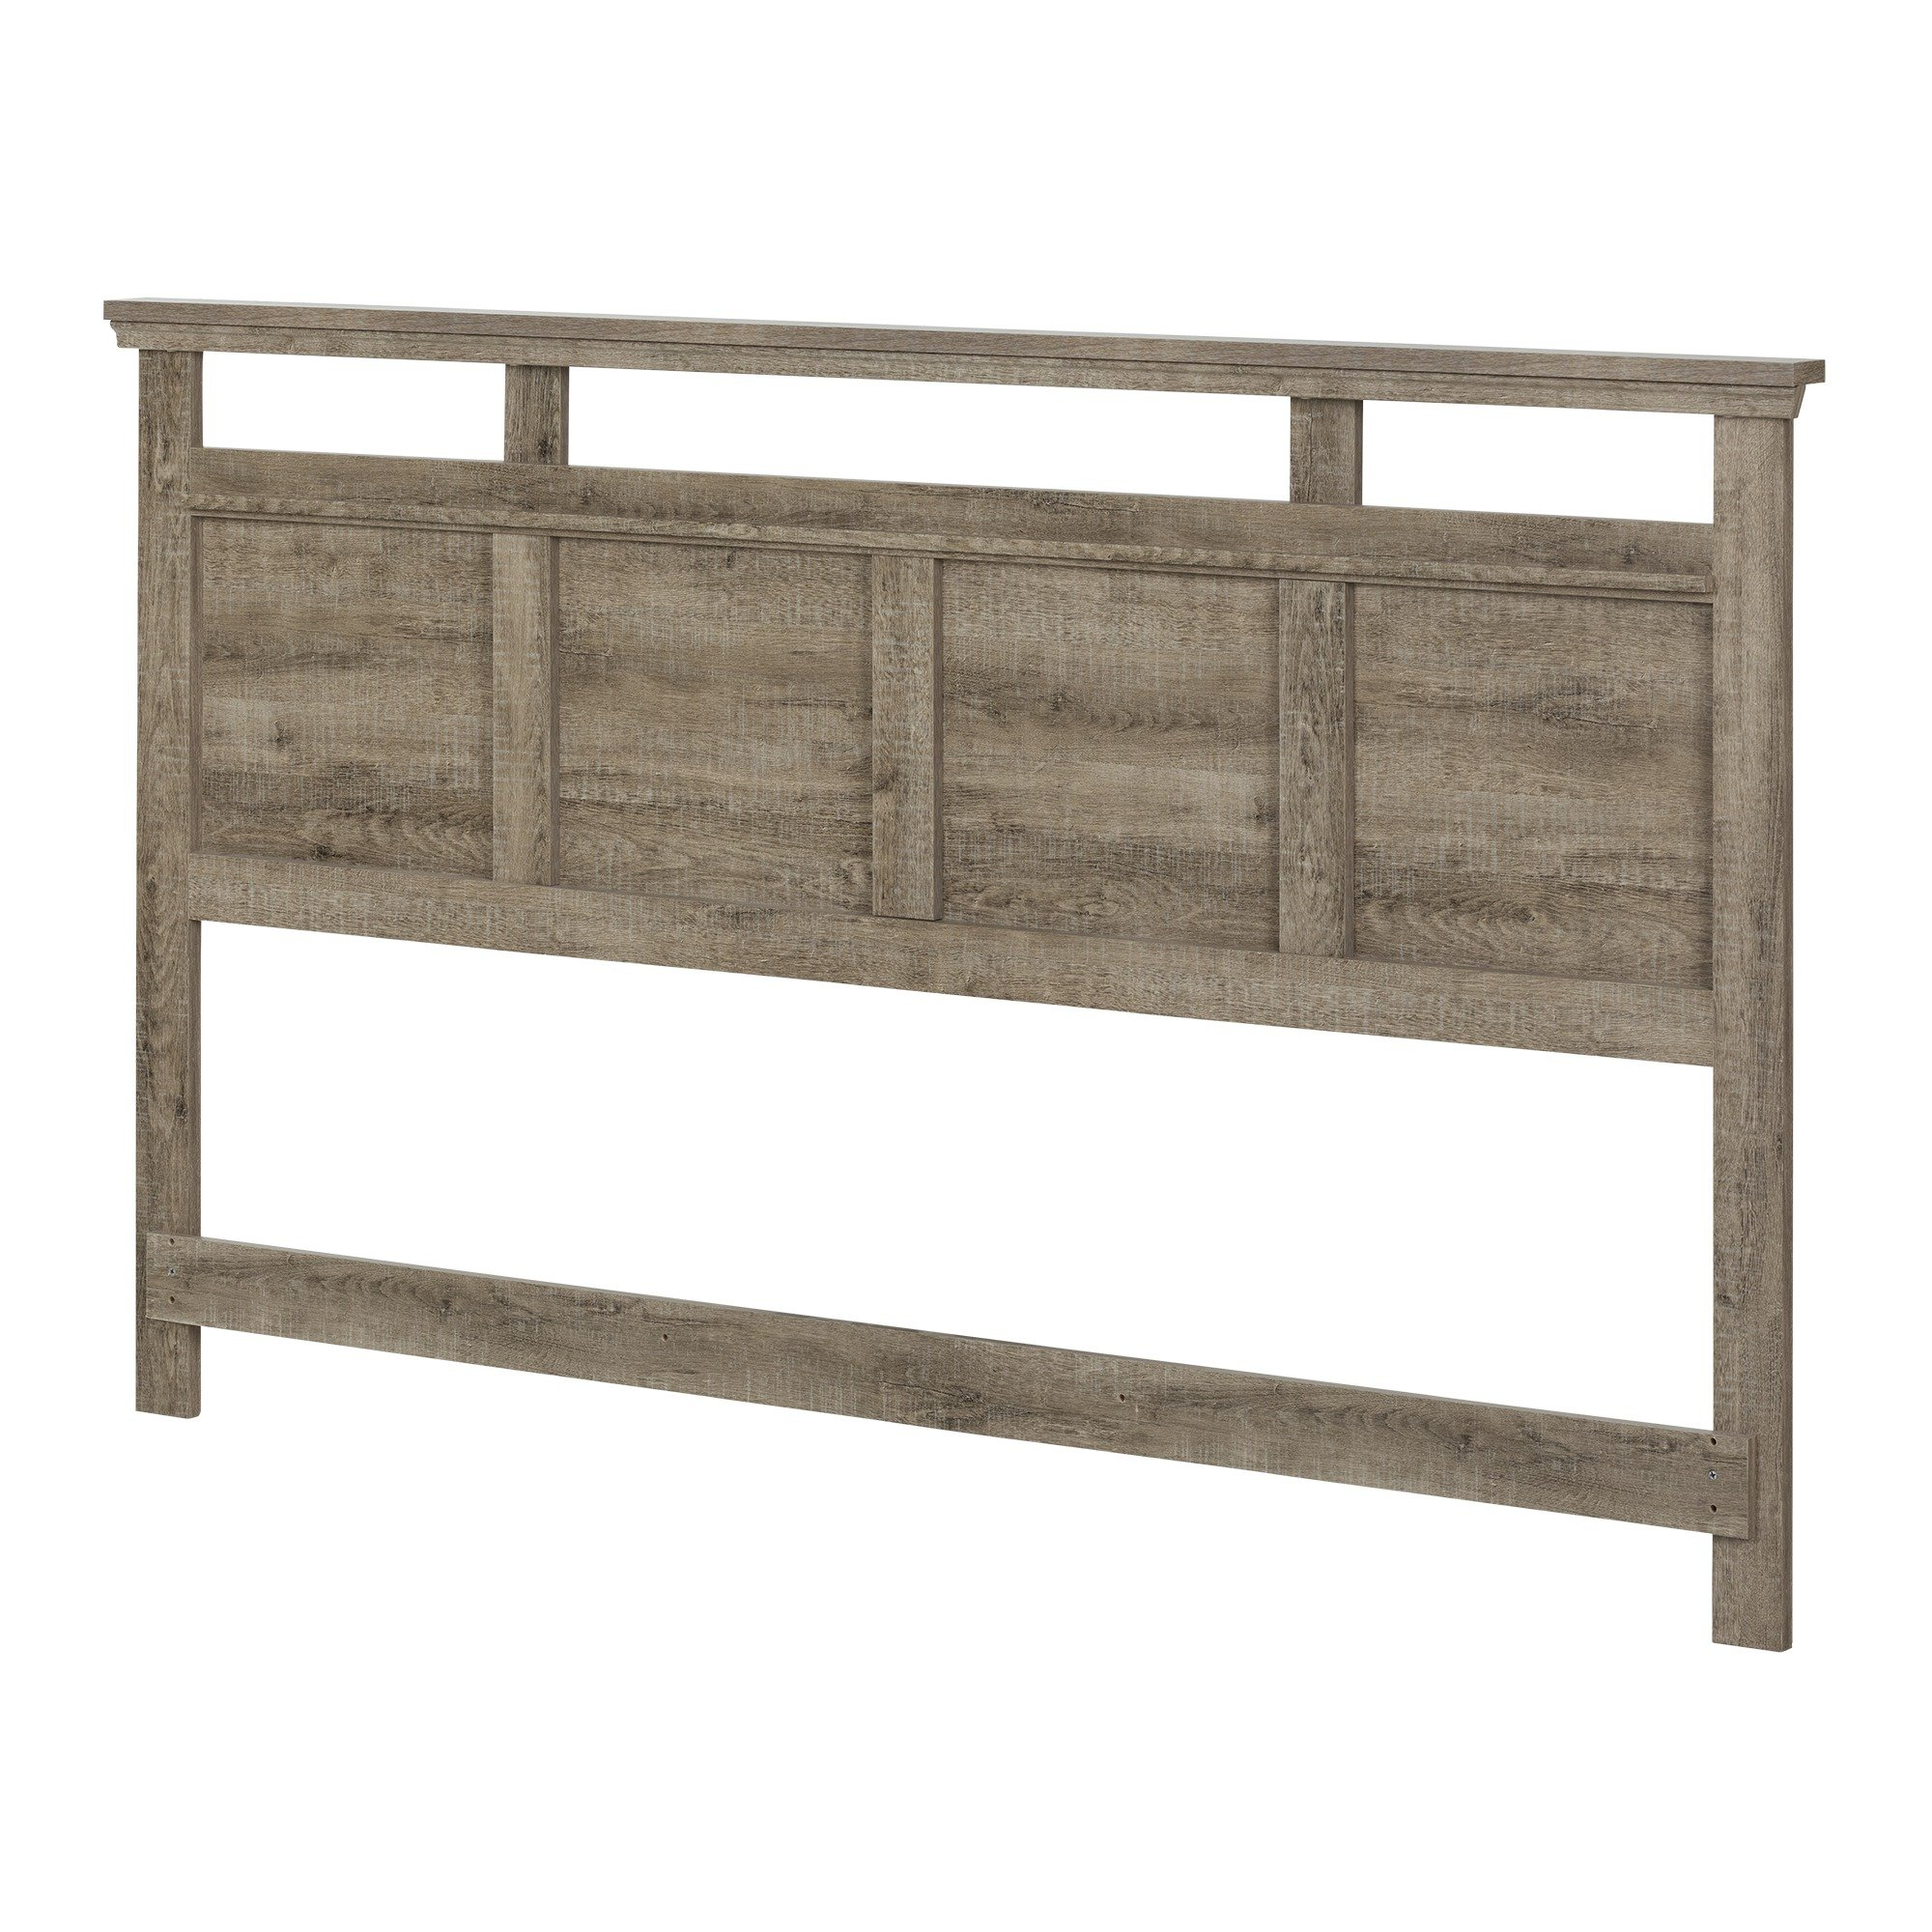 South Shore Versa Headboard, King 78-Inch, Weathered Oak